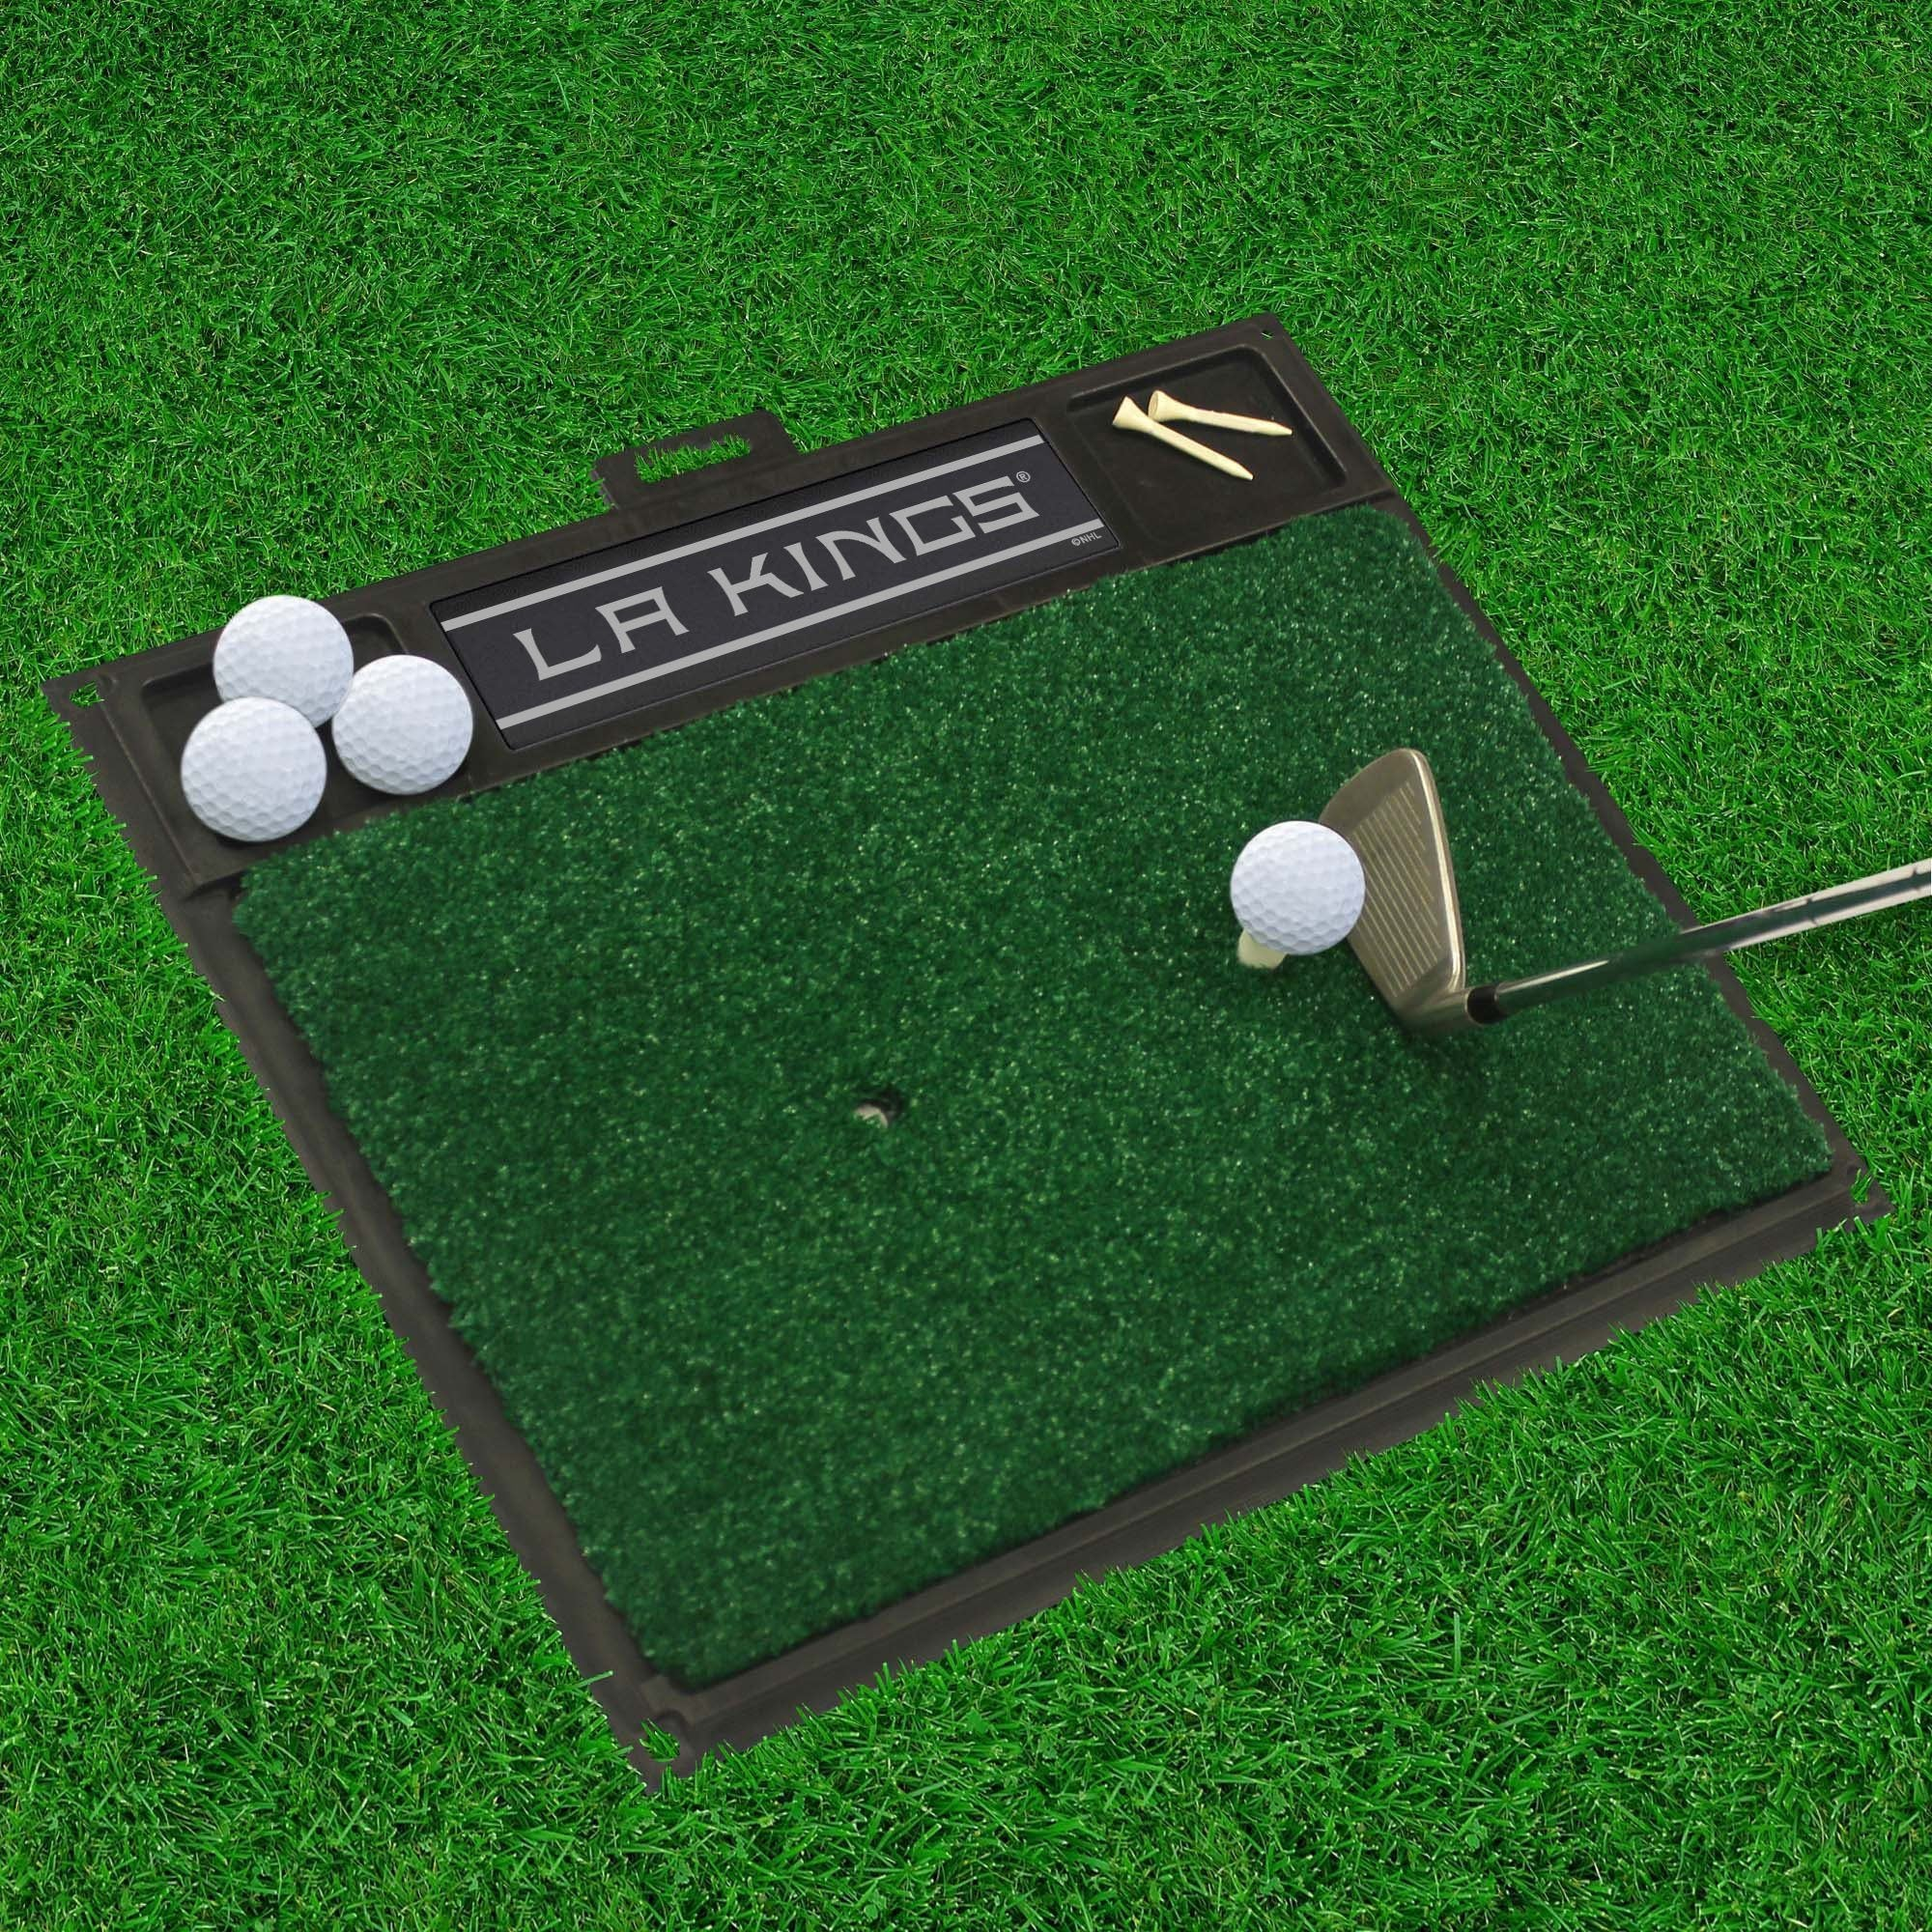 NHL - Golf Hitting Mat NHL Mats, Golf Accessory, Golf Hitting Mat, NHL, Home Fan Mats Los Angeles Kings